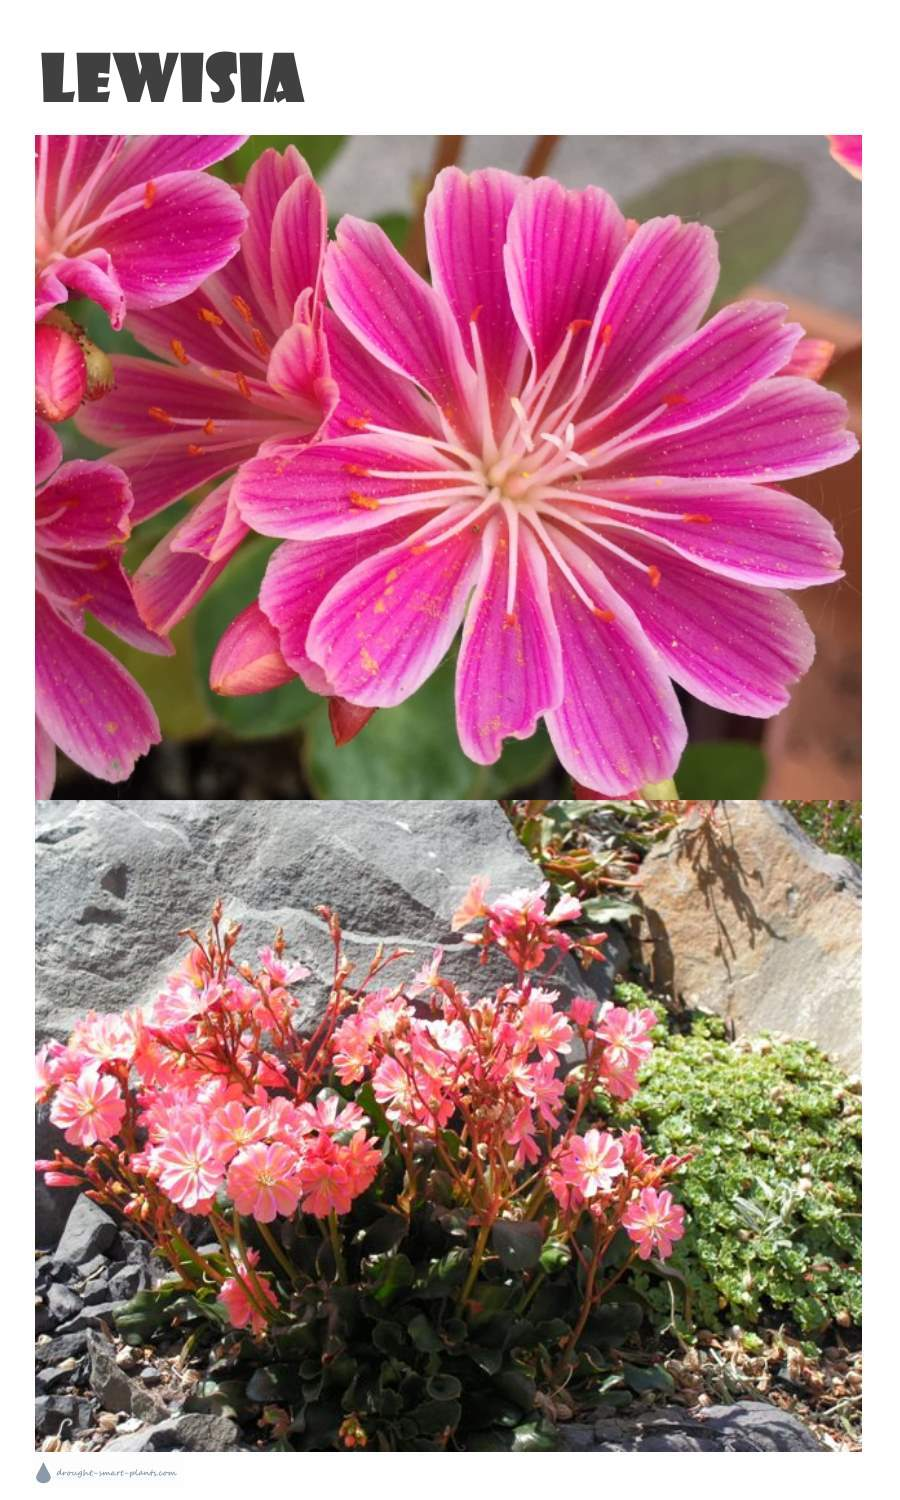 Lewisia Alpine Plant As A Companion For Hardy Succulents